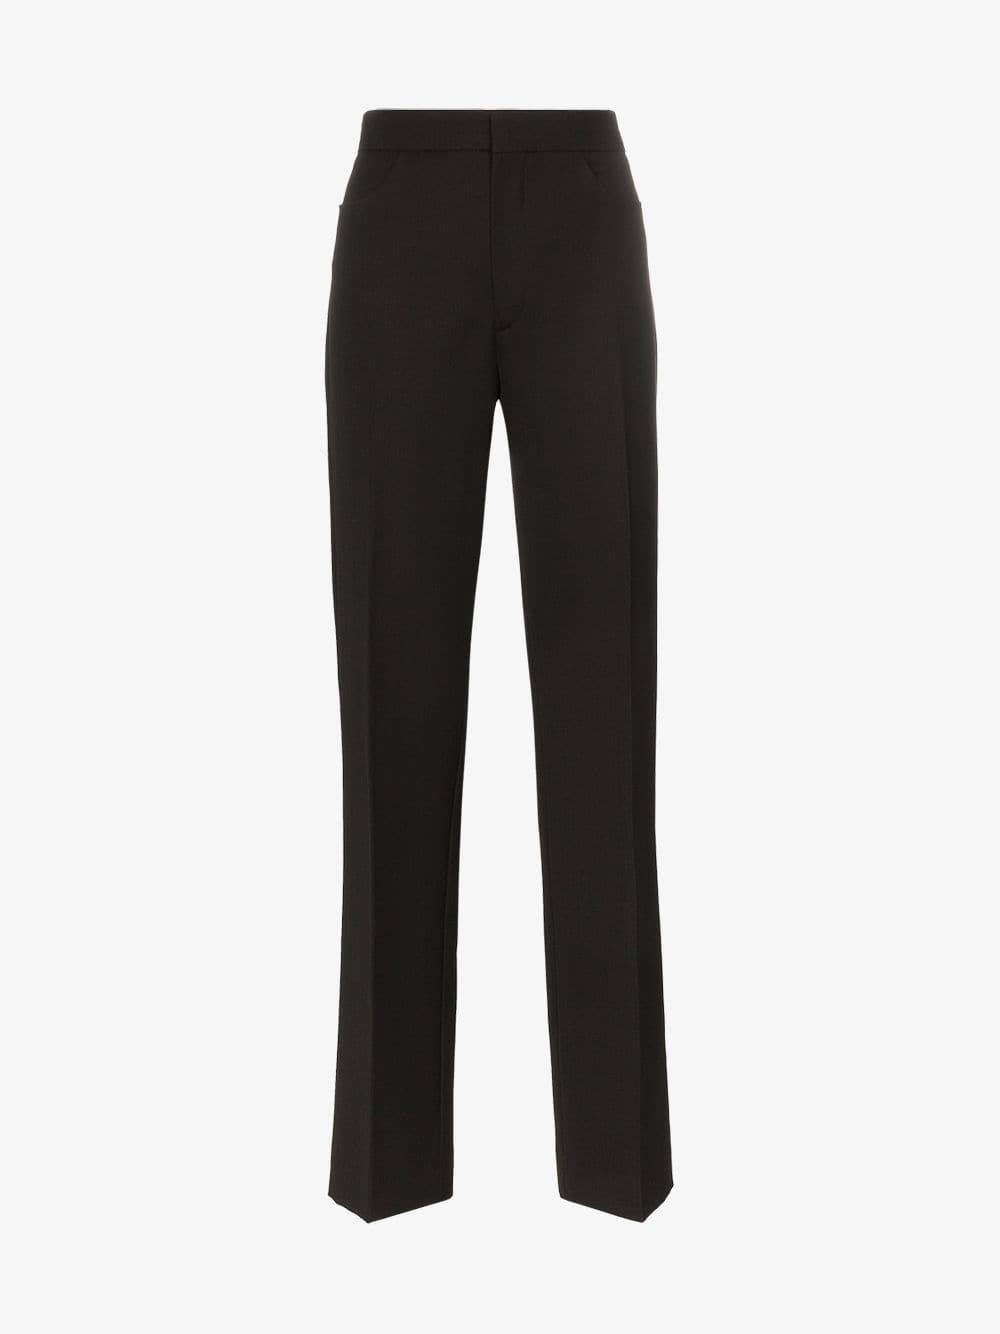 Toteme troia tailored wool-blend trousers in black